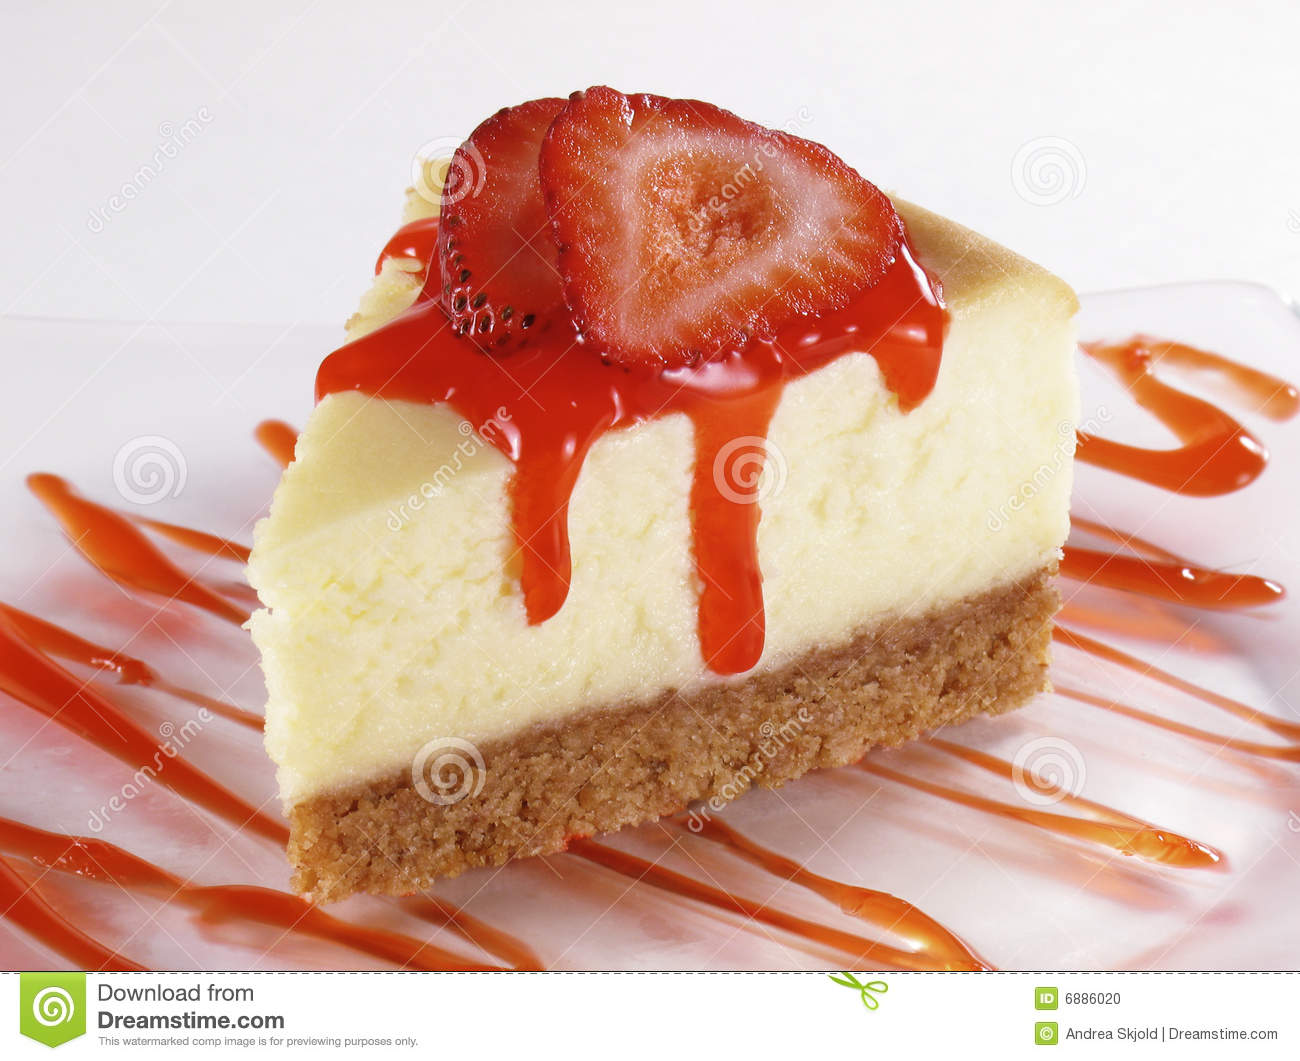 Strawberry Cheesecake Stock Photo - Image: 6886020